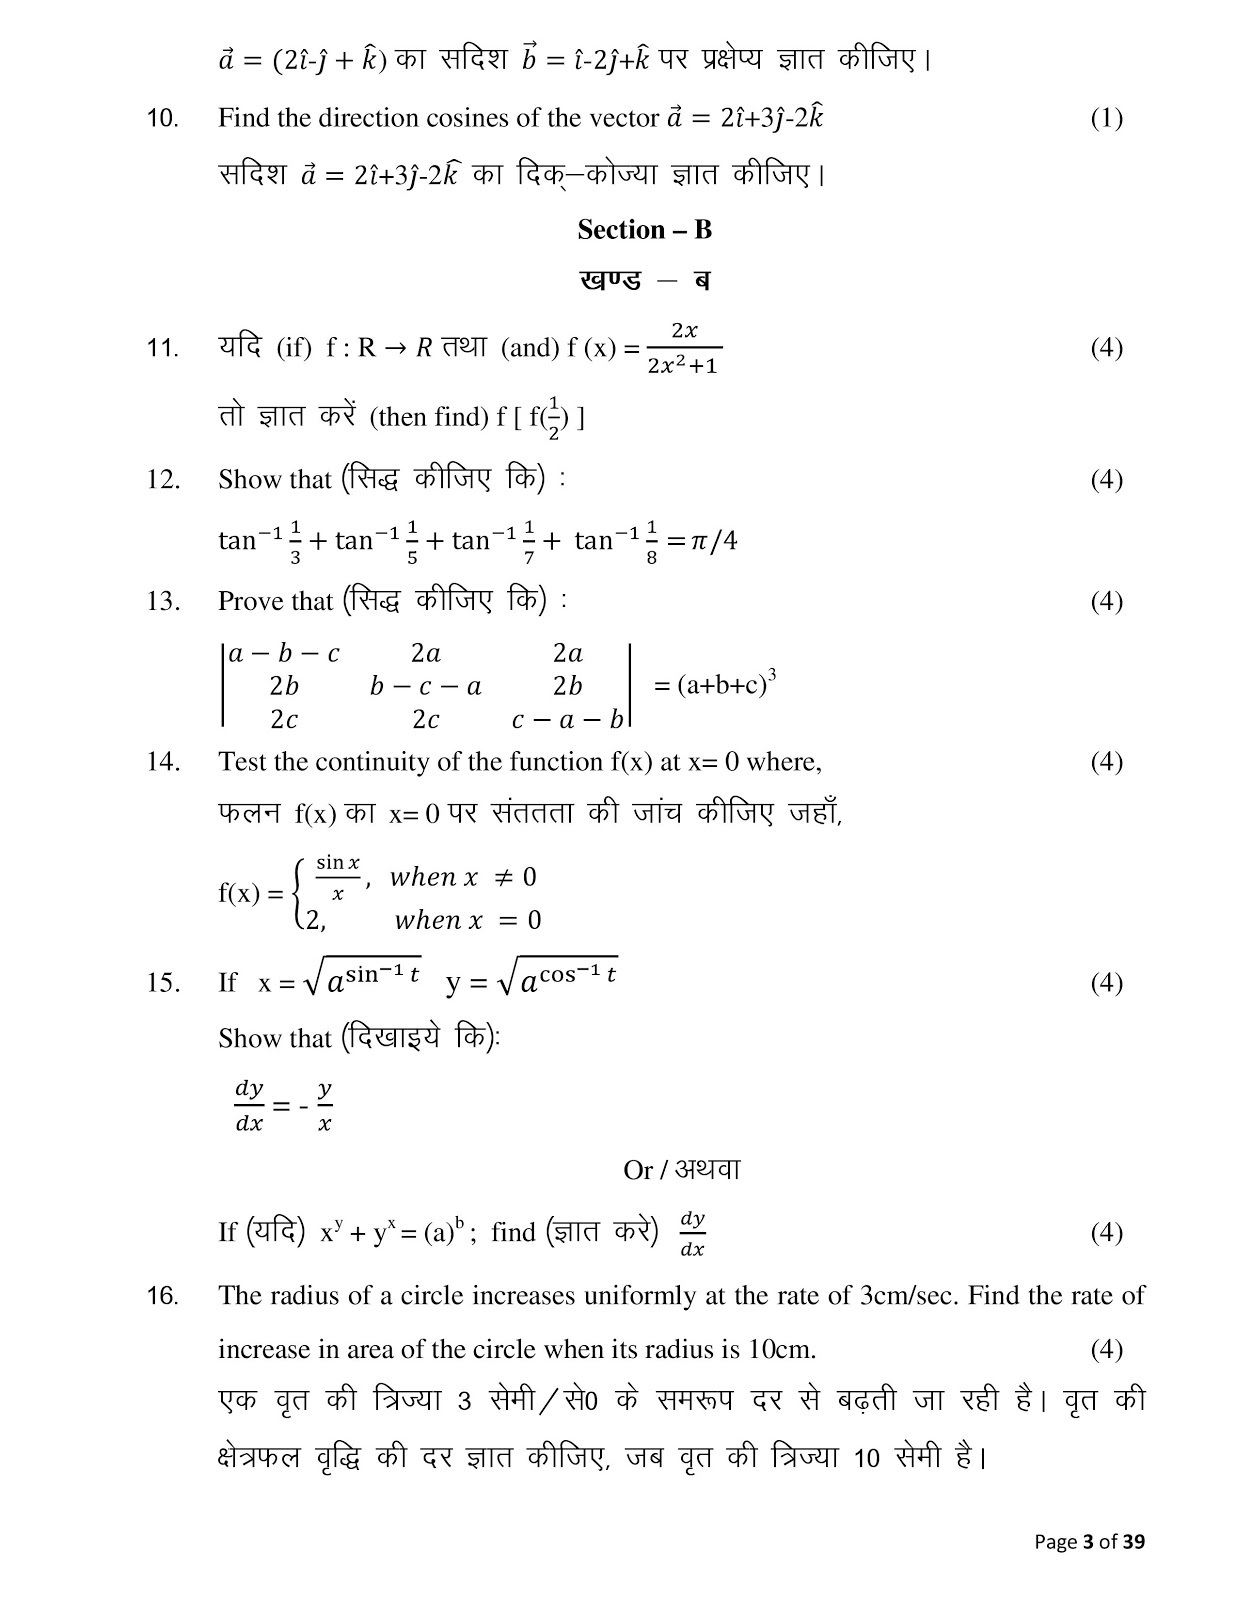 JAC board class 12th 2018 Mathematics sample paper